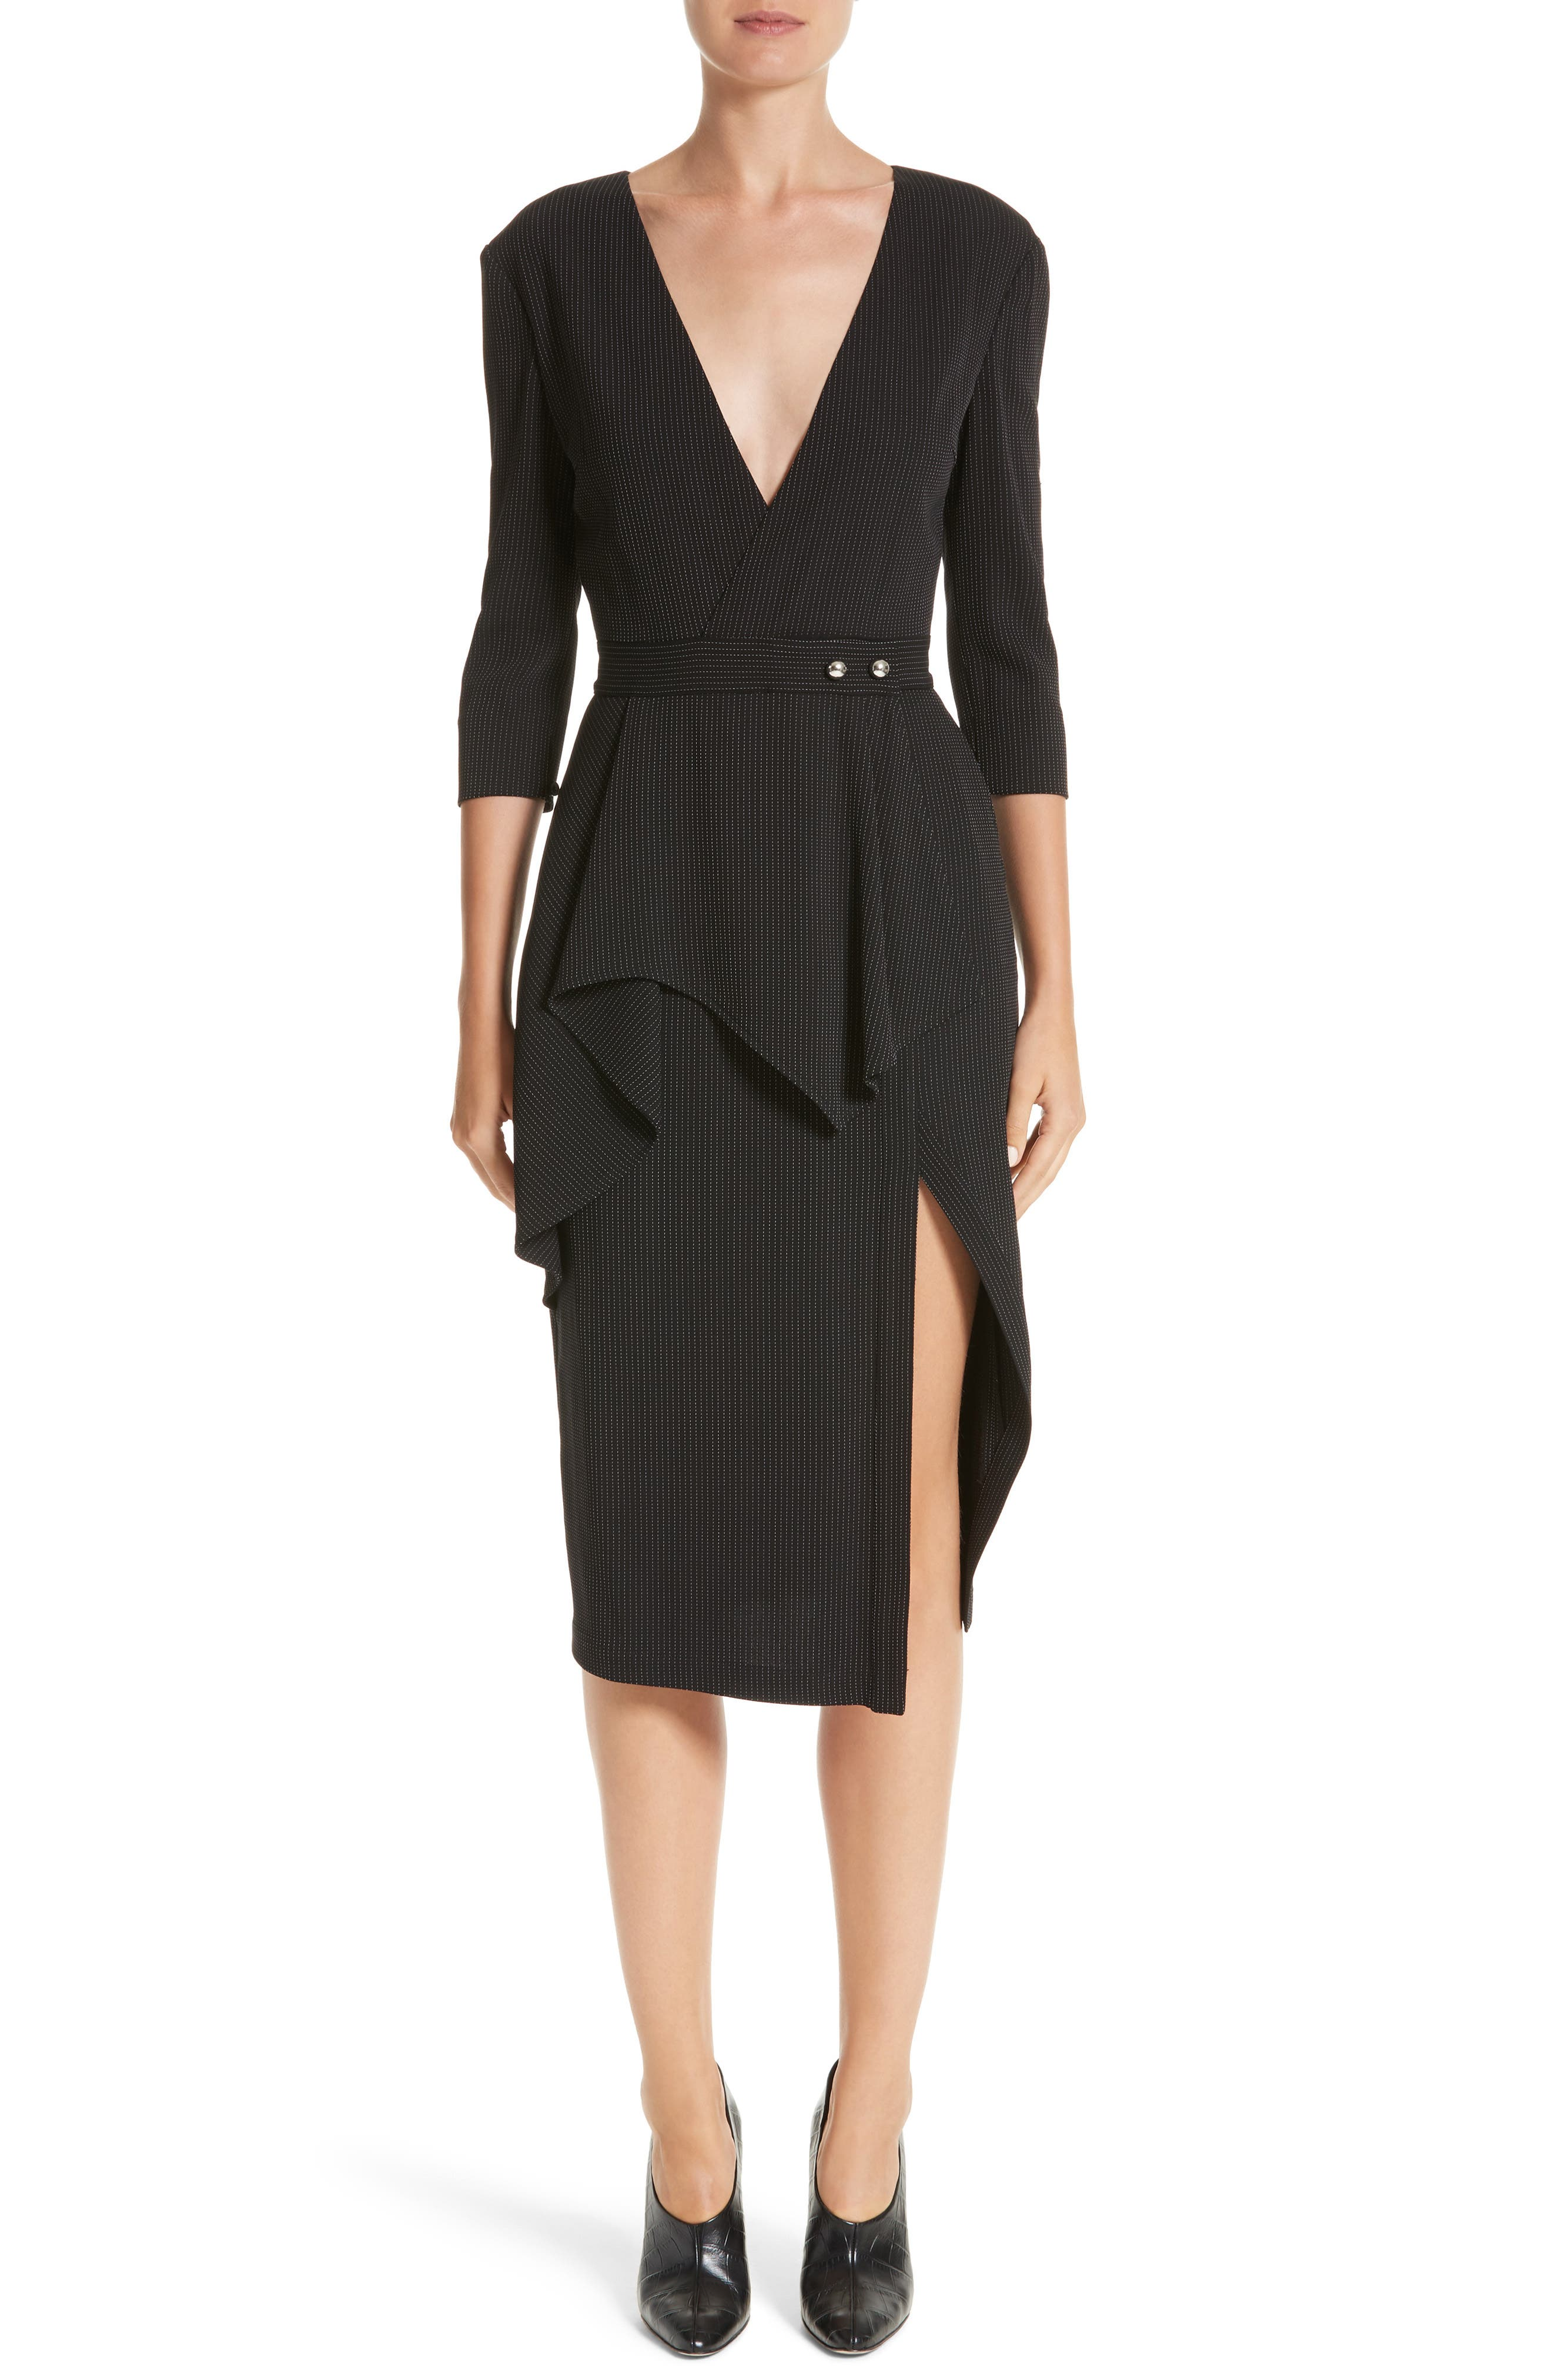 Jason Wu Pinstripe Jersey Sheath Dress,                             Main thumbnail 1, color,                             012